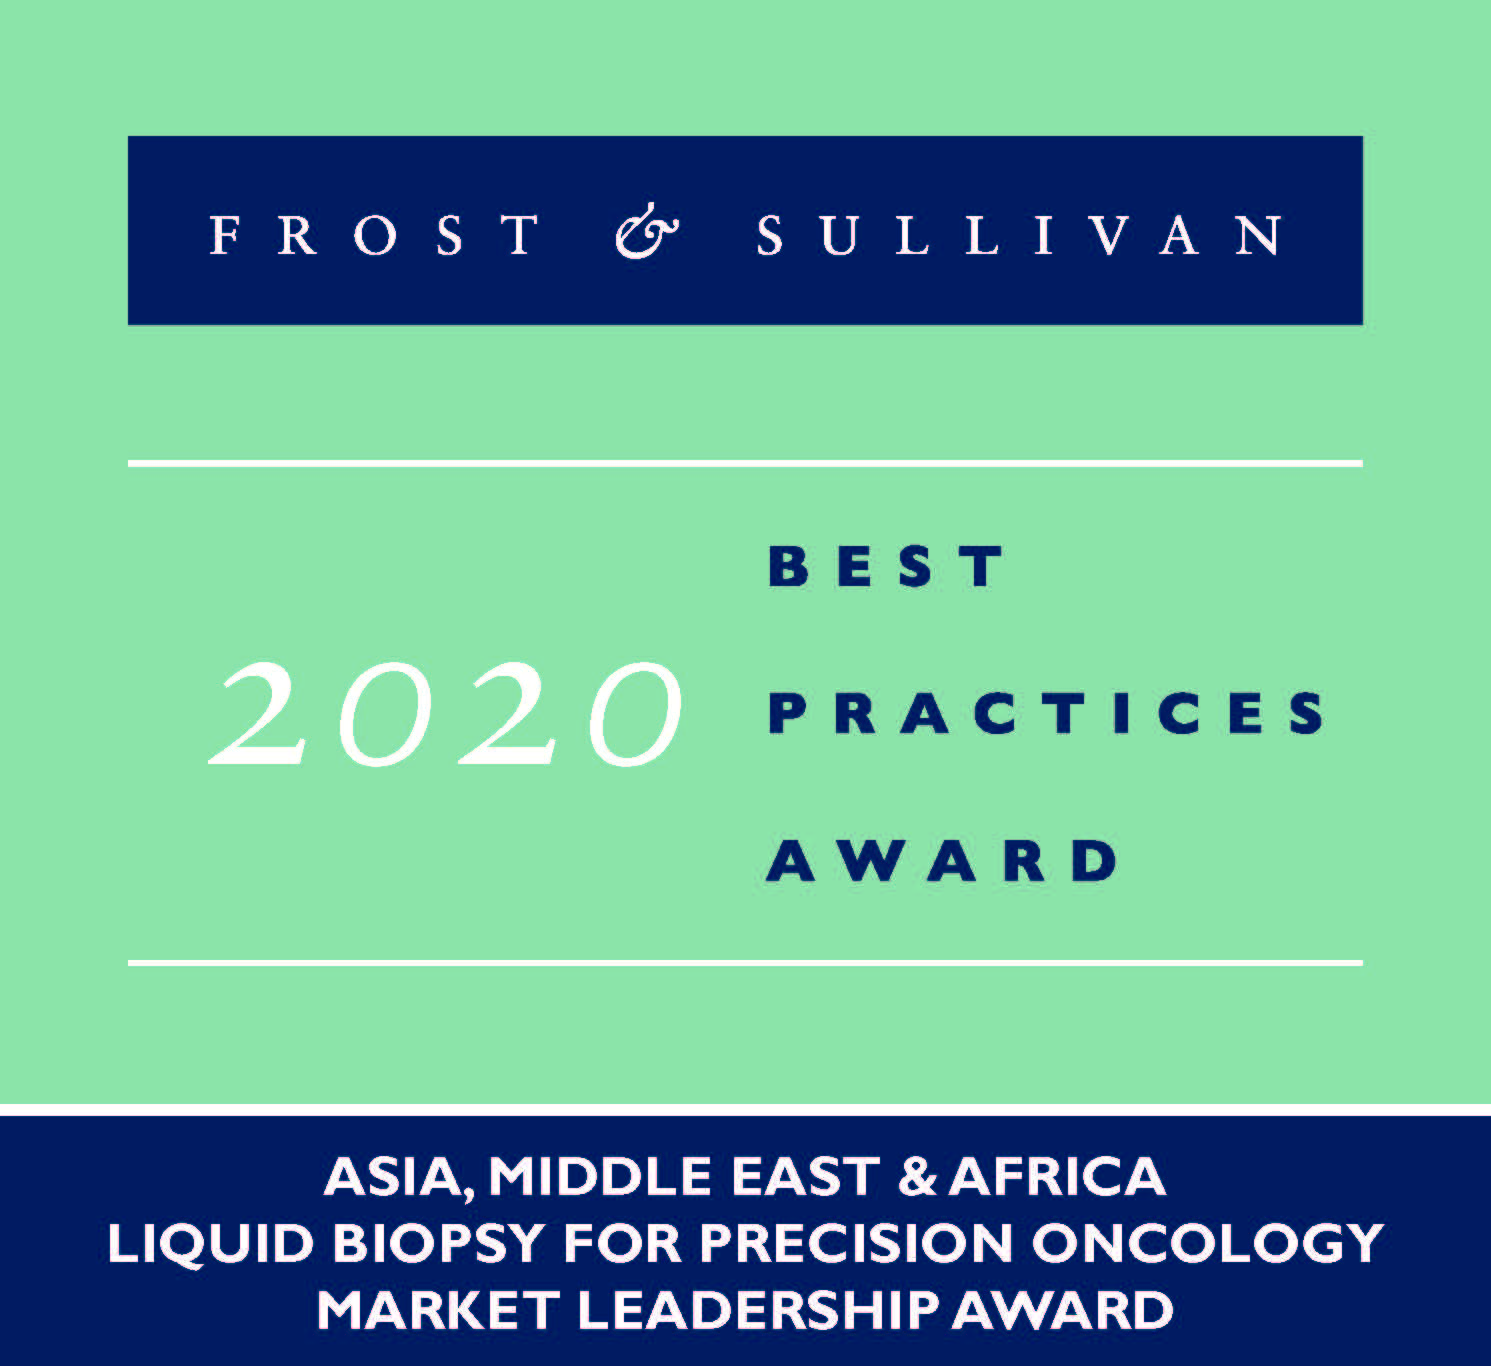 Guardant Health AMEA WinsFrost & Sullivan's Market Leadership Award for Liquid Biopsy in Precision Oncology in Asia, Middle East and Africa